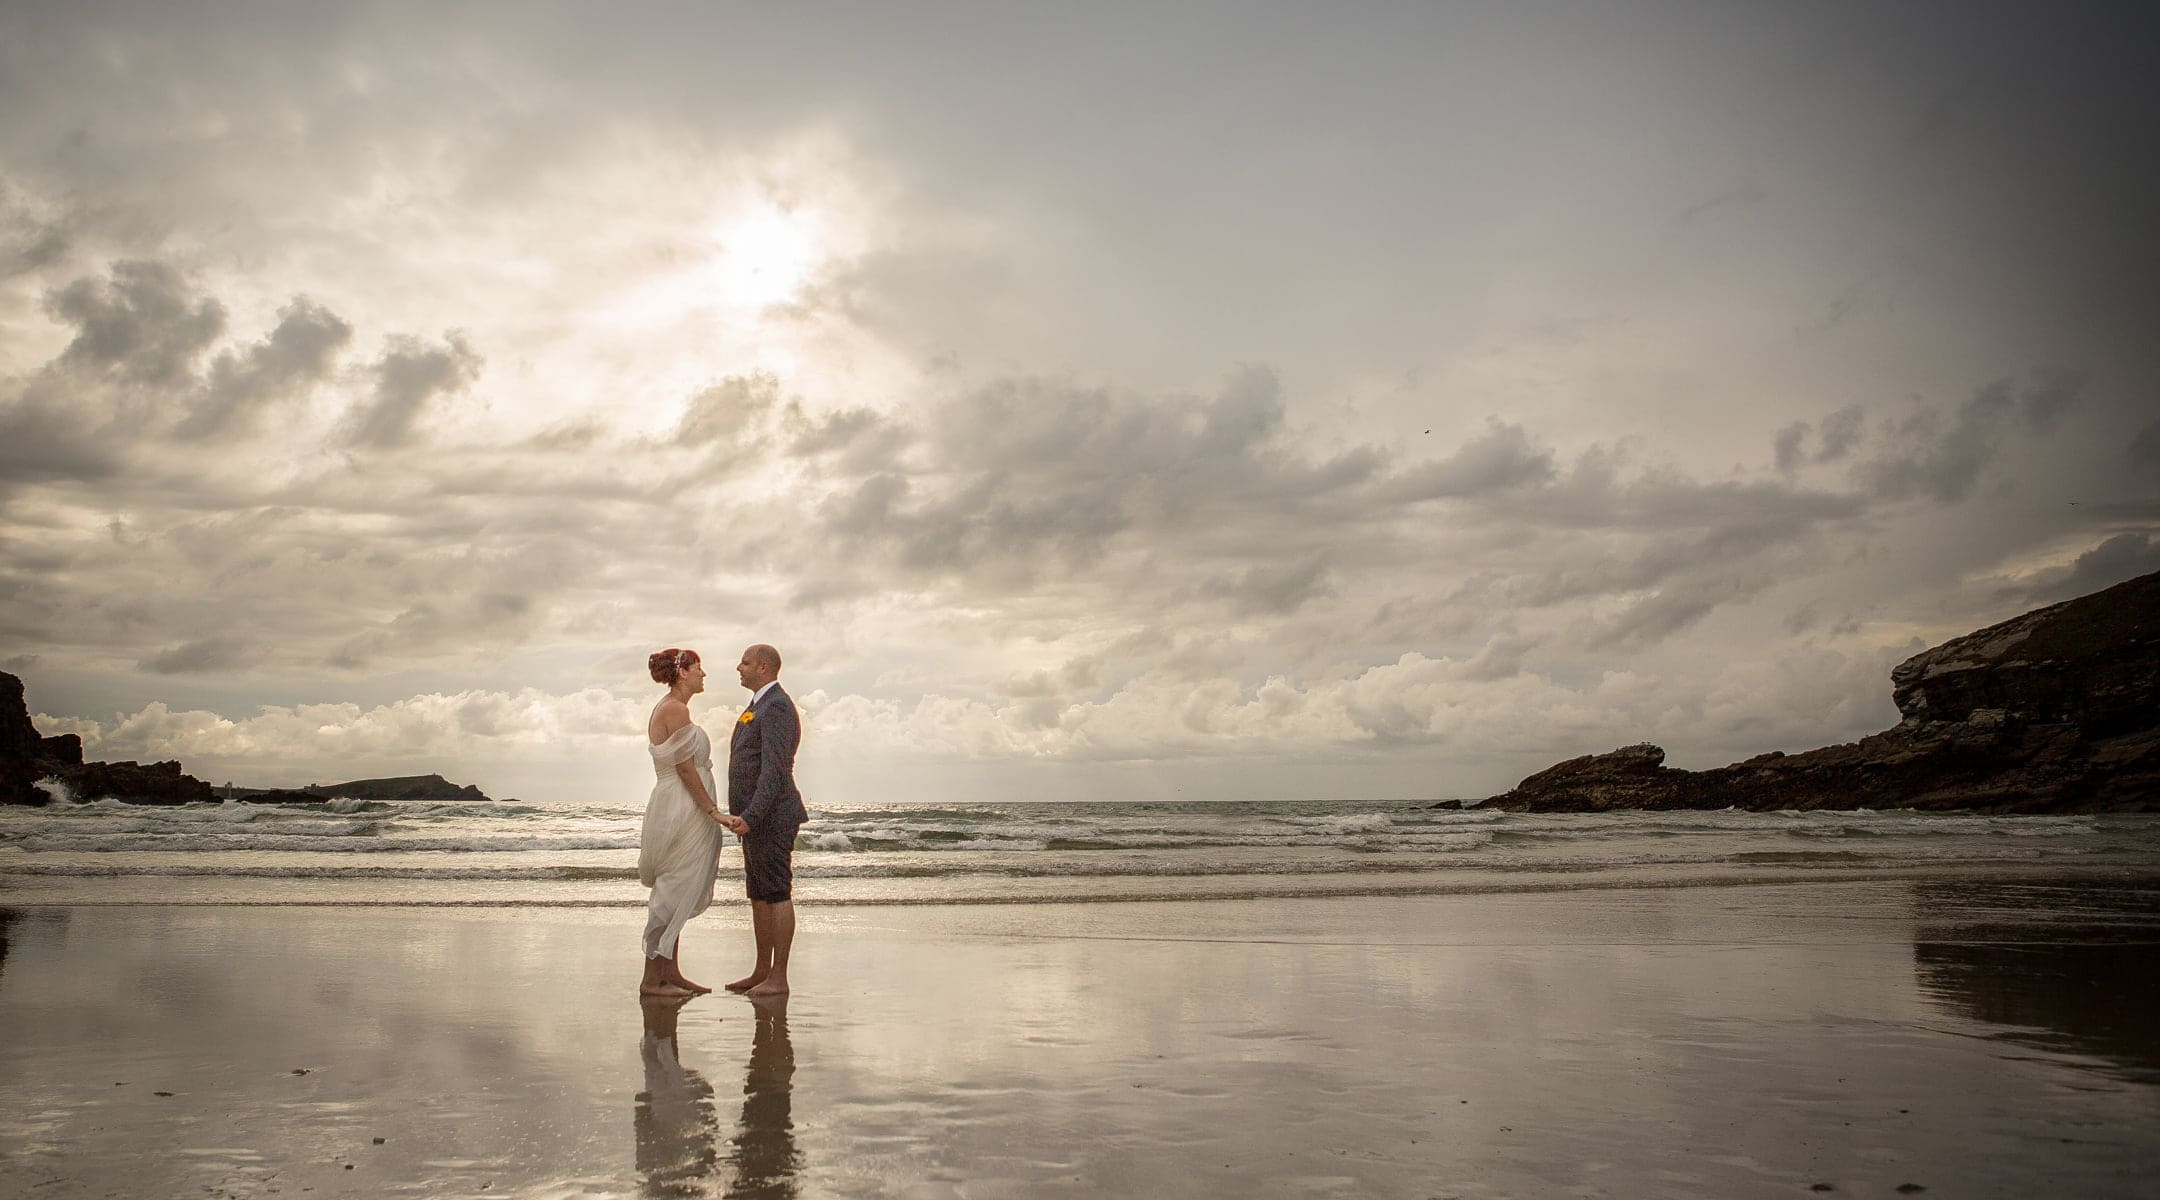 Jen + John - a wedding at Porth Veor Manor, Newquay